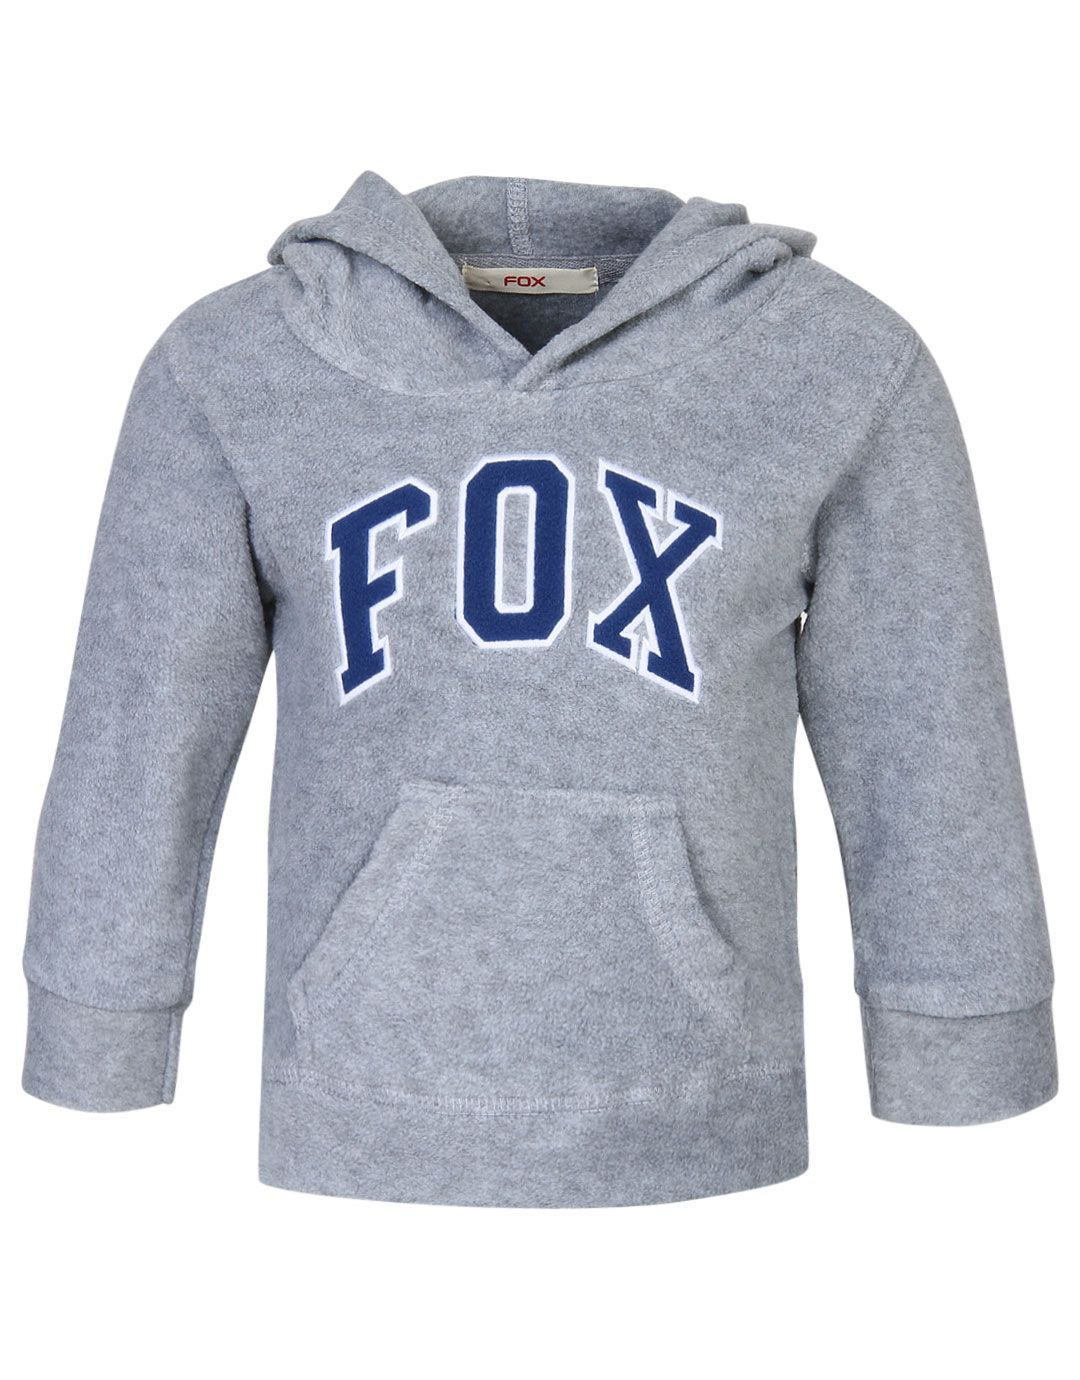 Fox Grey Sweatshirt for Girls